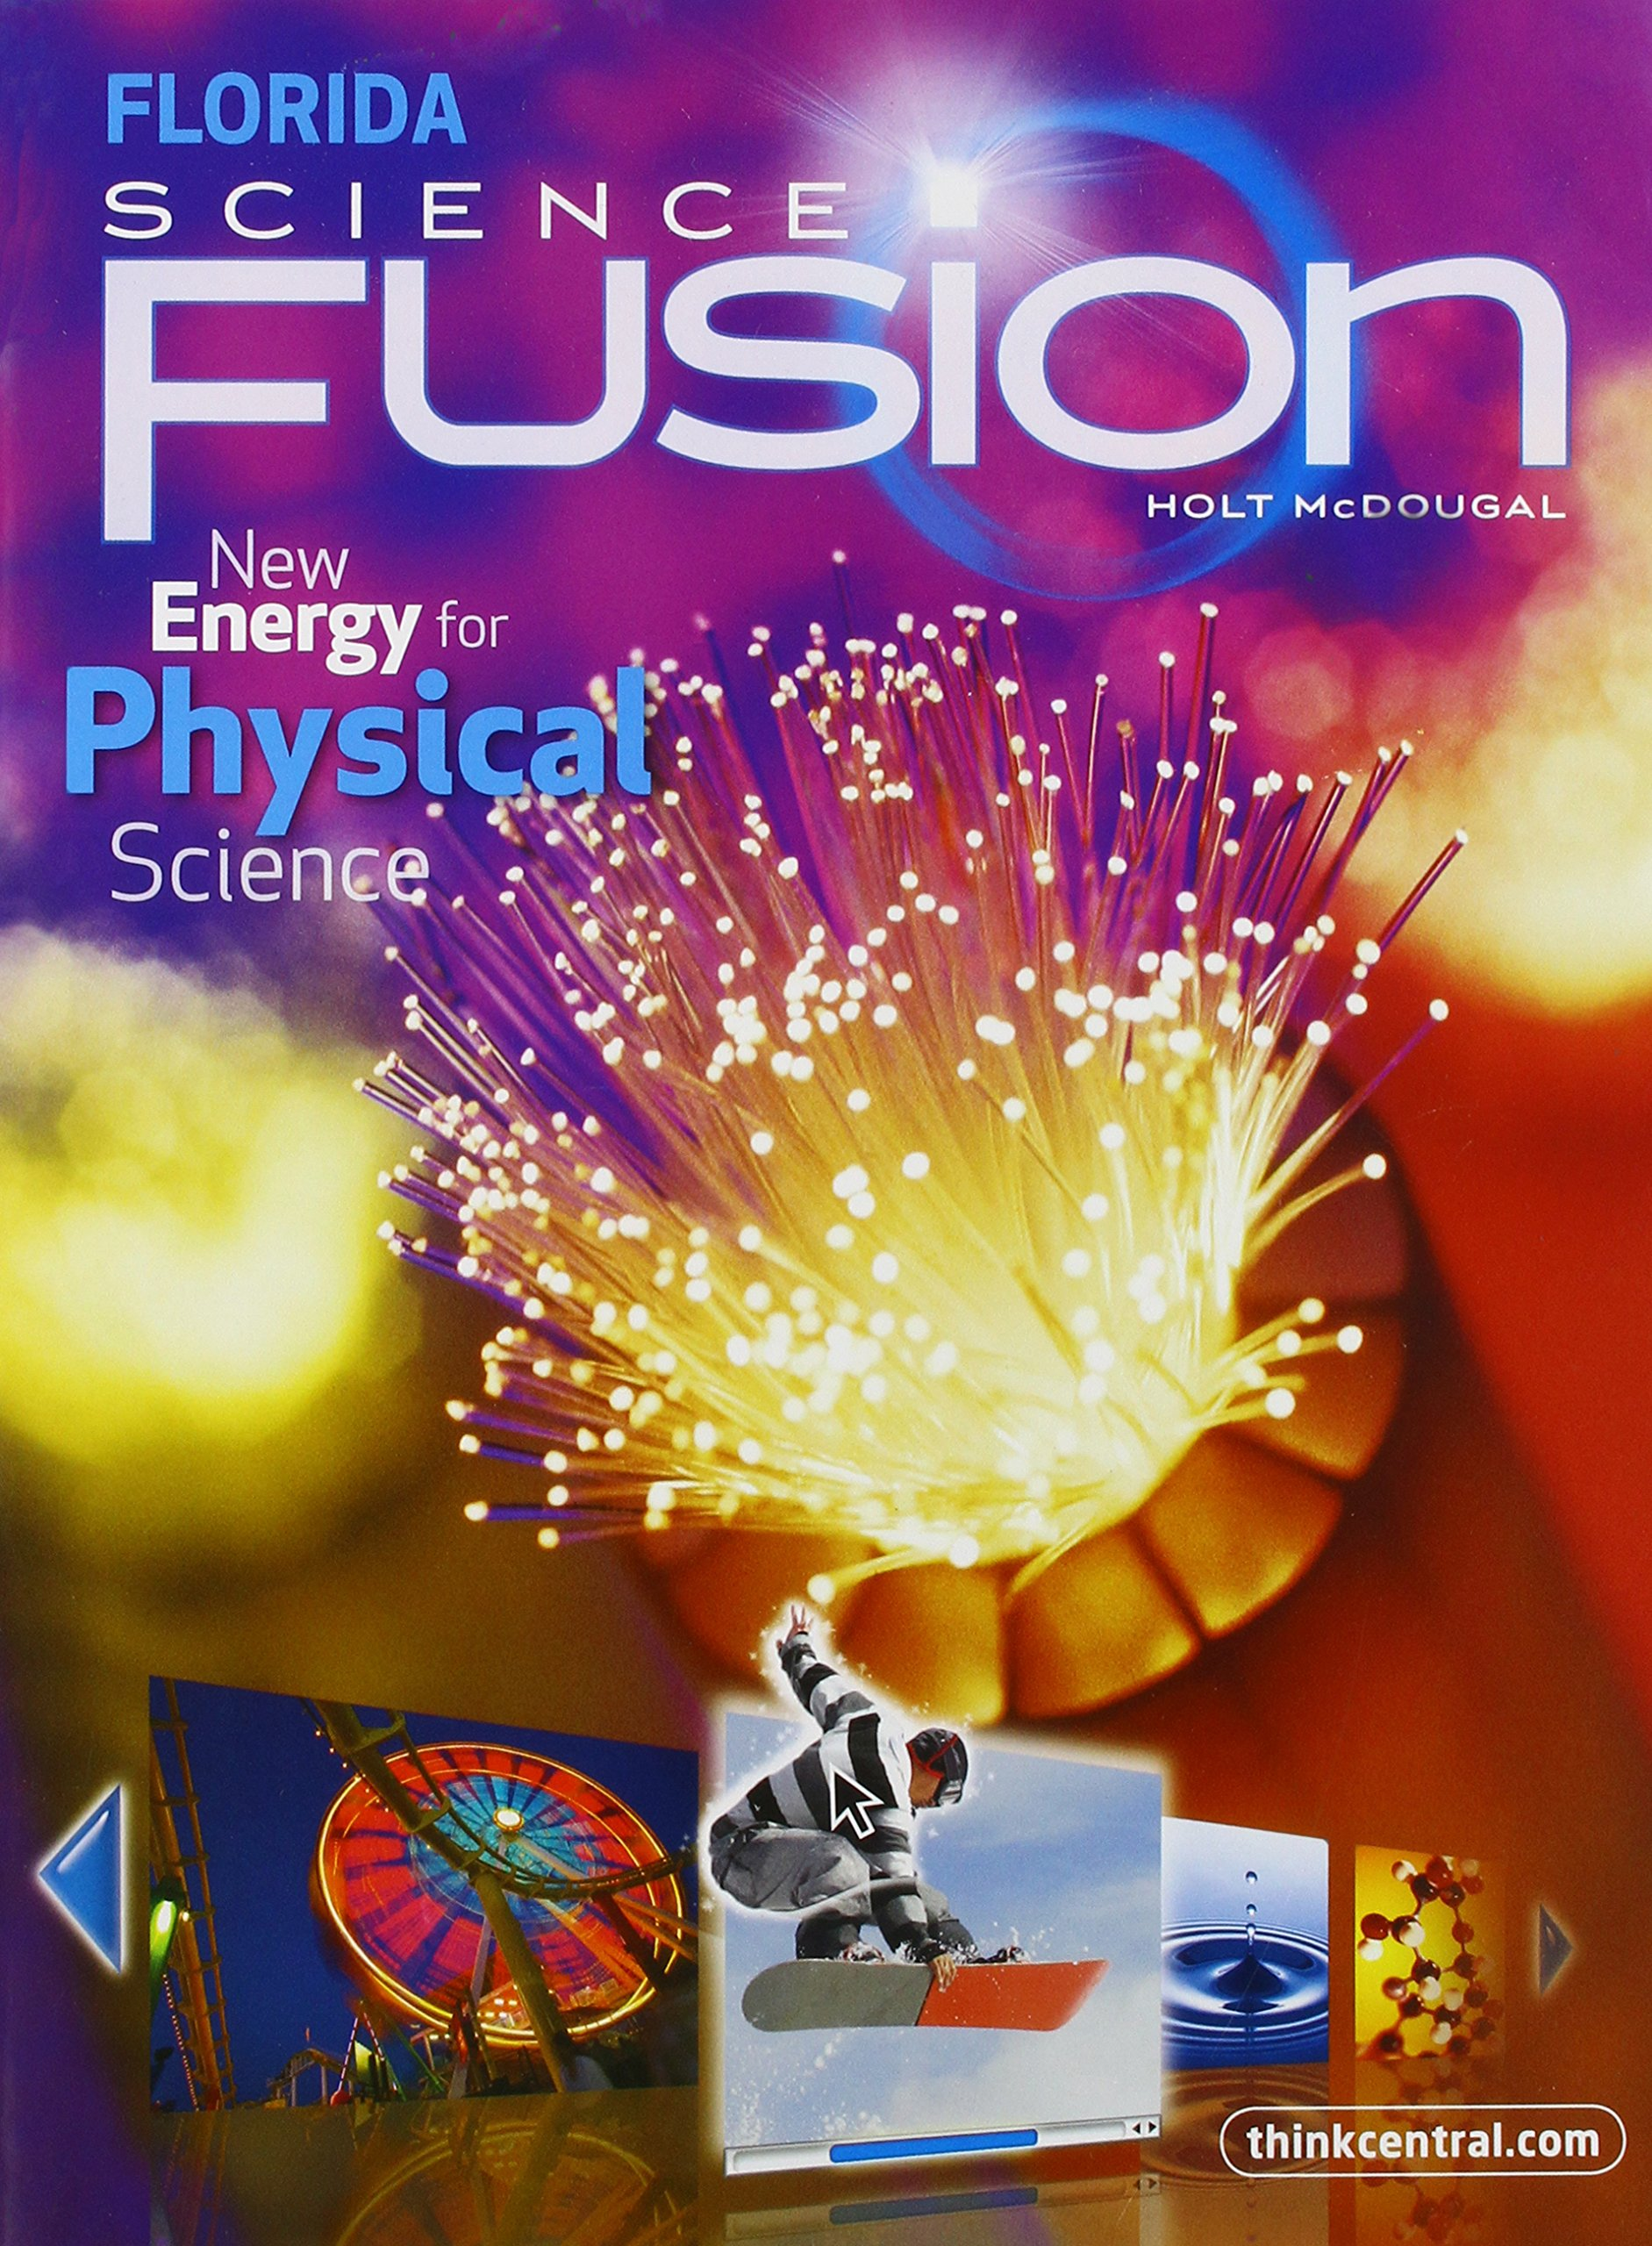 Holt mcdougal science fusion florida student edition interactive holt mcdougal science fusion florida student edition interactive worktext grades 6 8 physical 2012 houghton mifflin harcourt 9780547398778 amazon fandeluxe Images